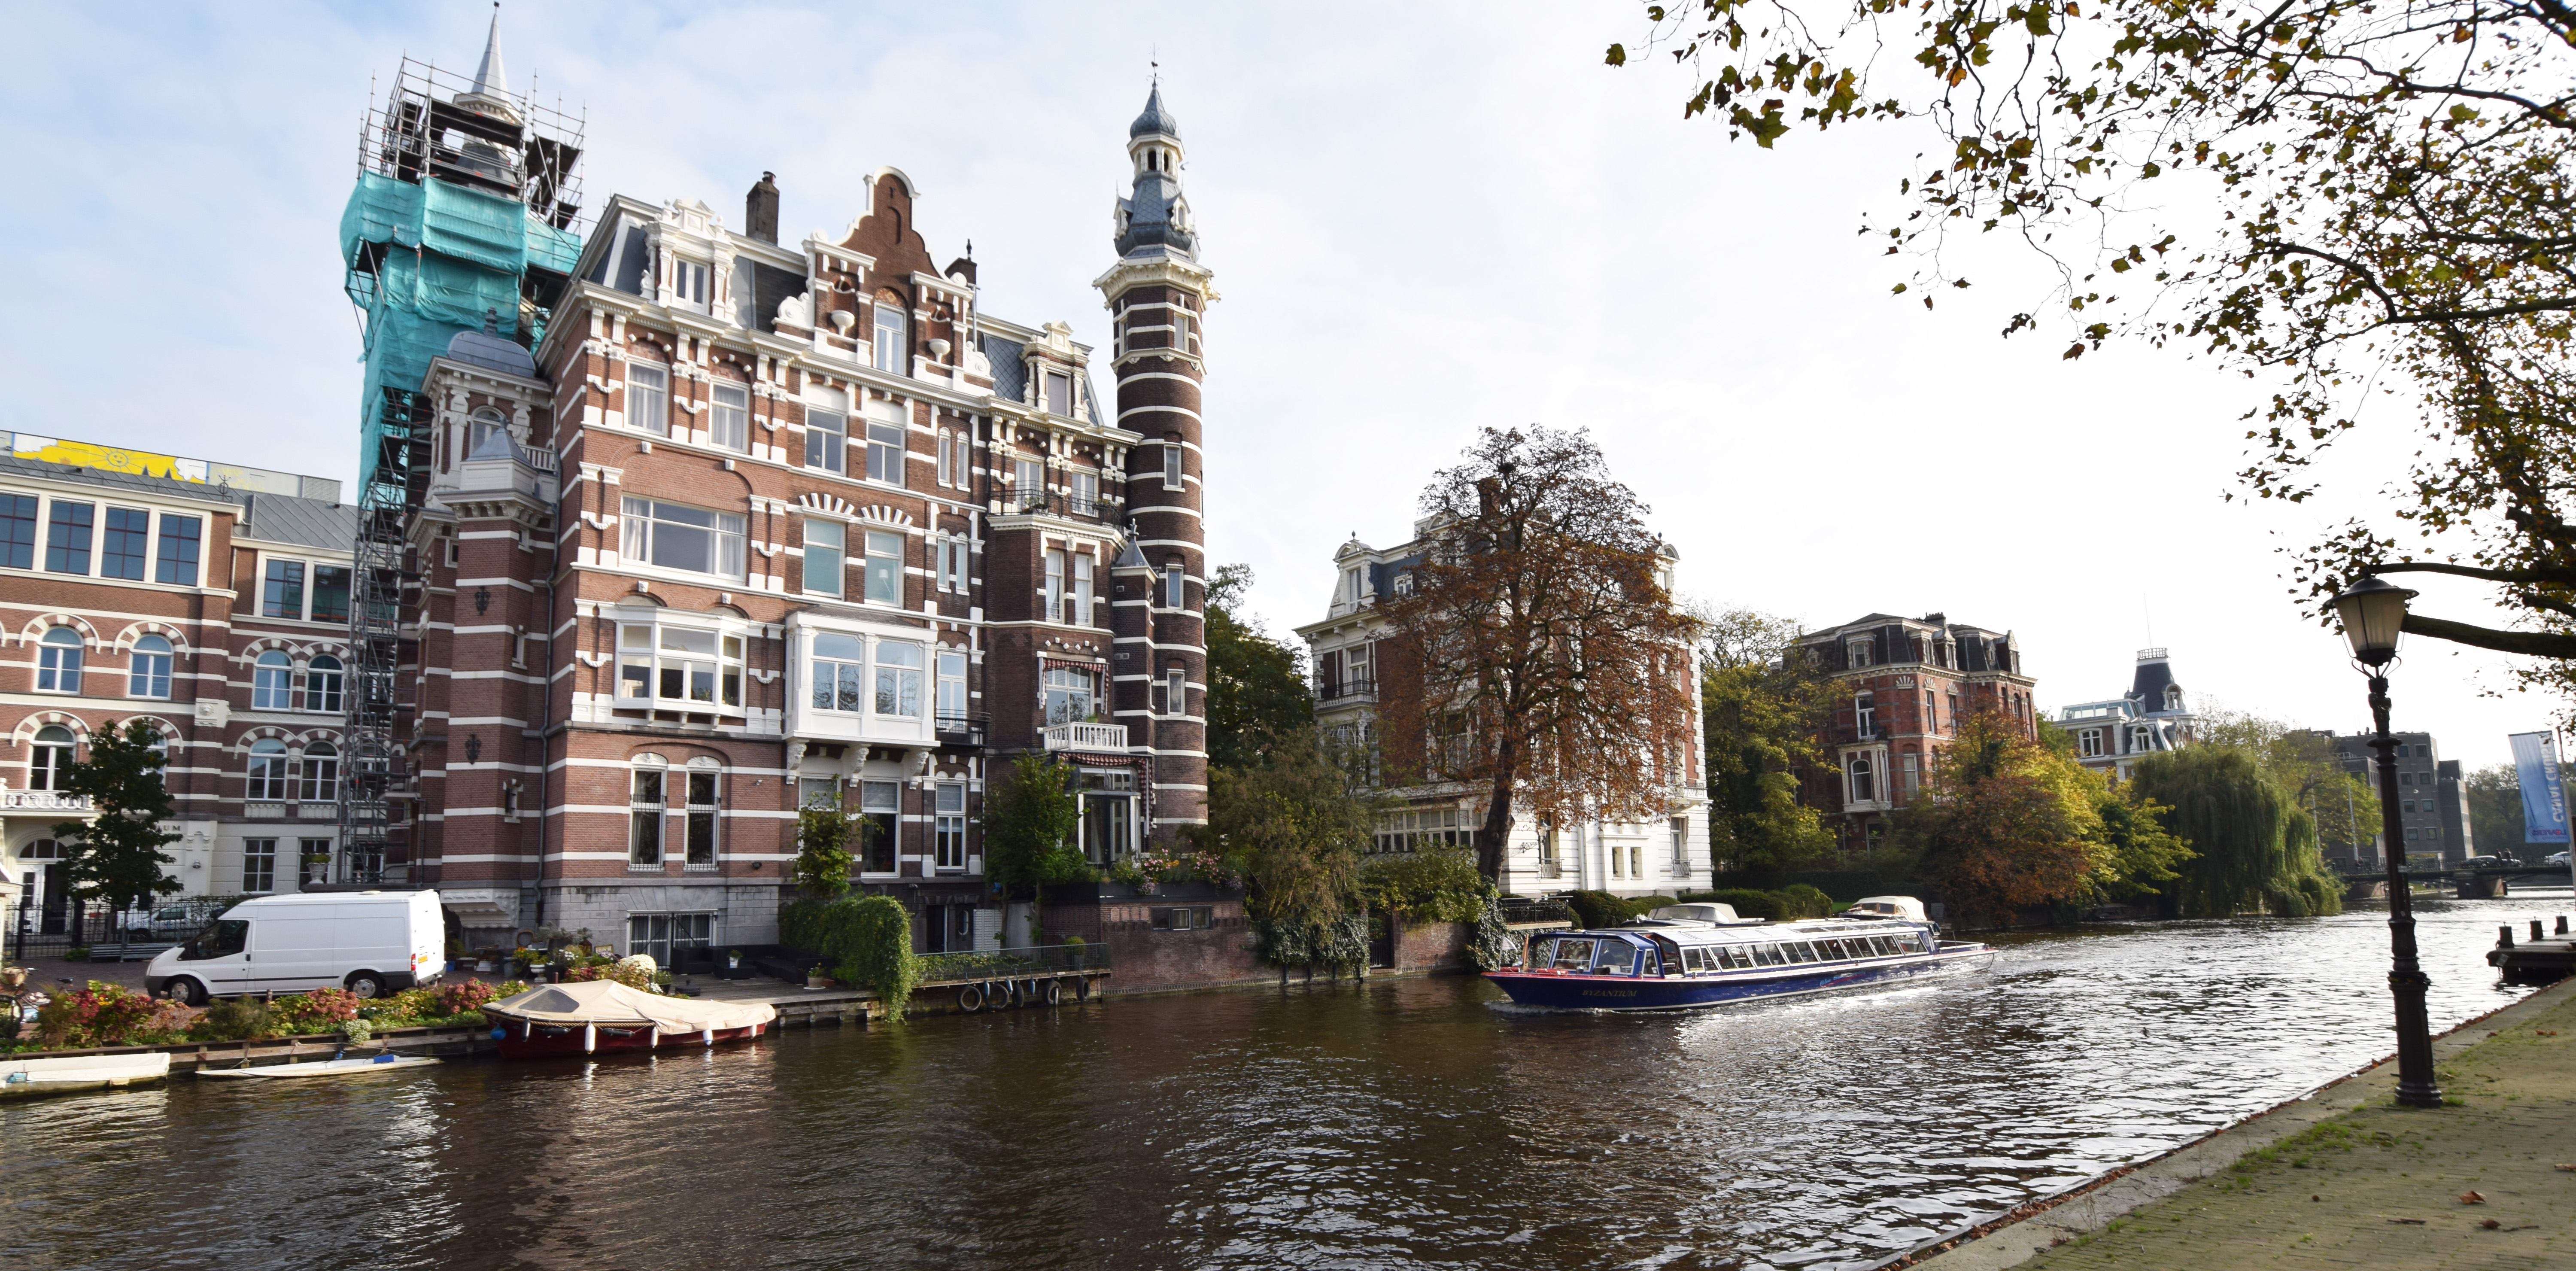 Amsterdam is a state-of-the-art destination